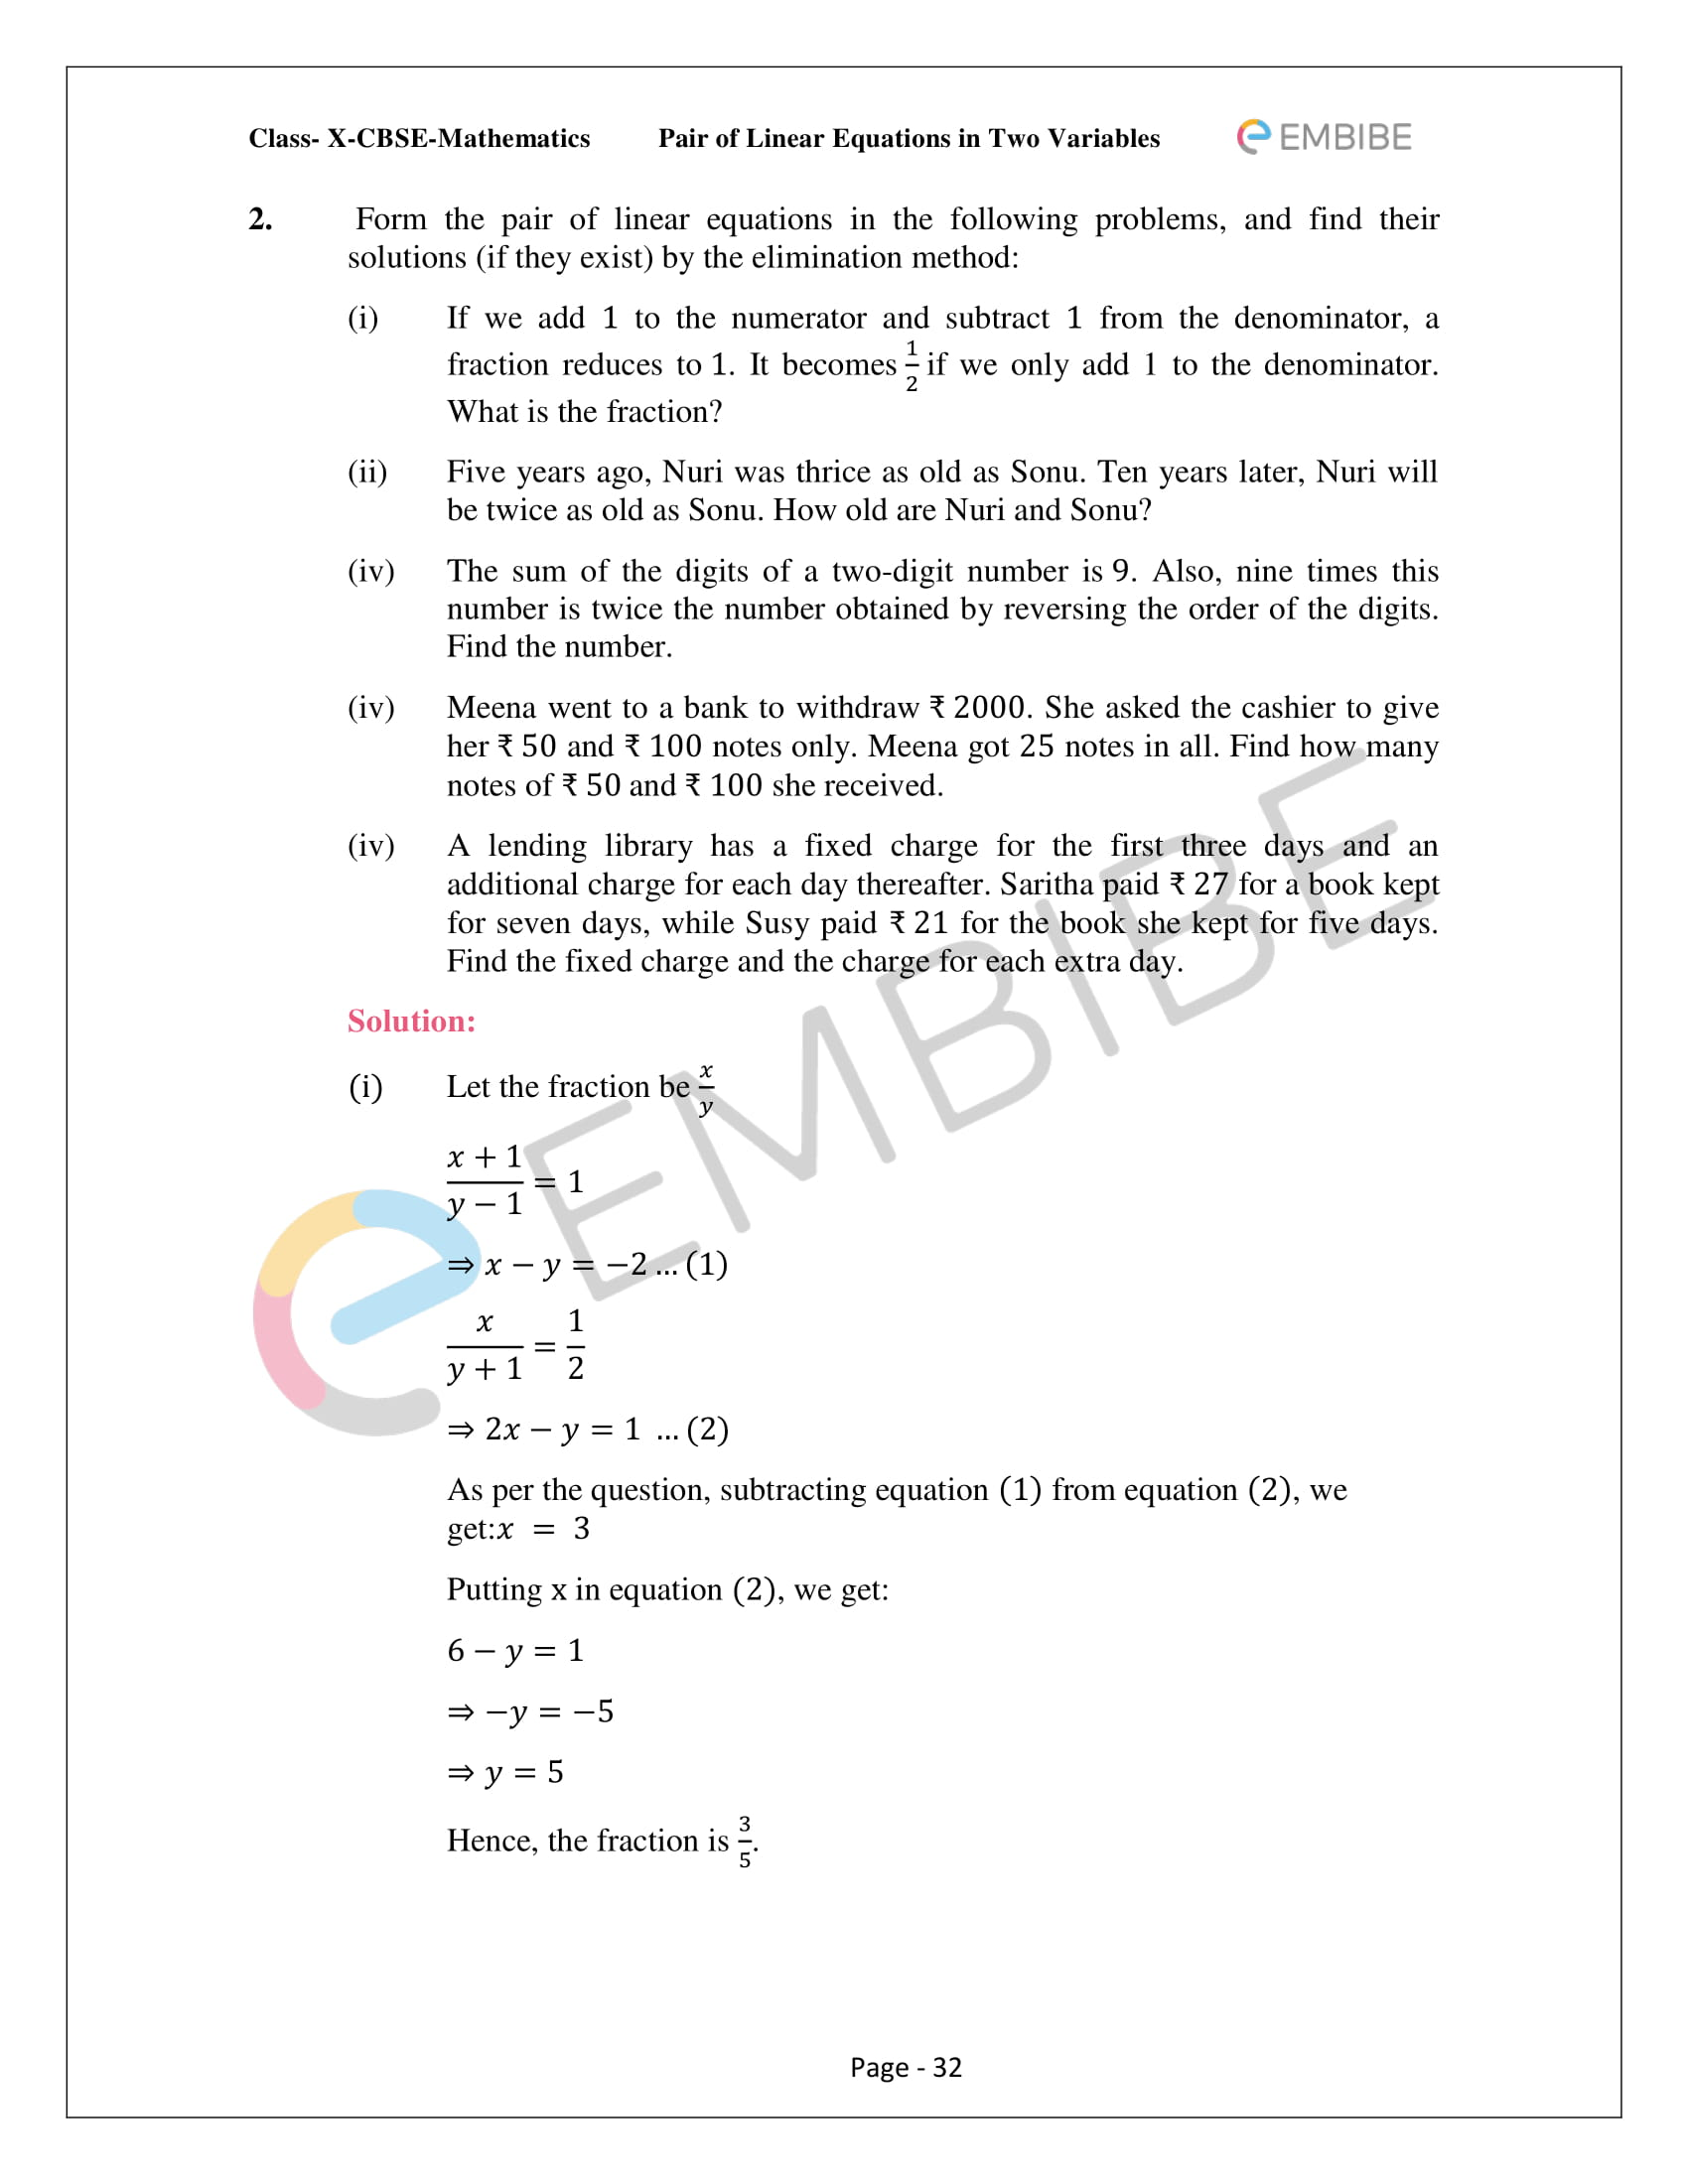 CBSE NCERT Solutions For Class 10 Maths Chapter 3 - Pair of Linear Equations In Two Variables - 32